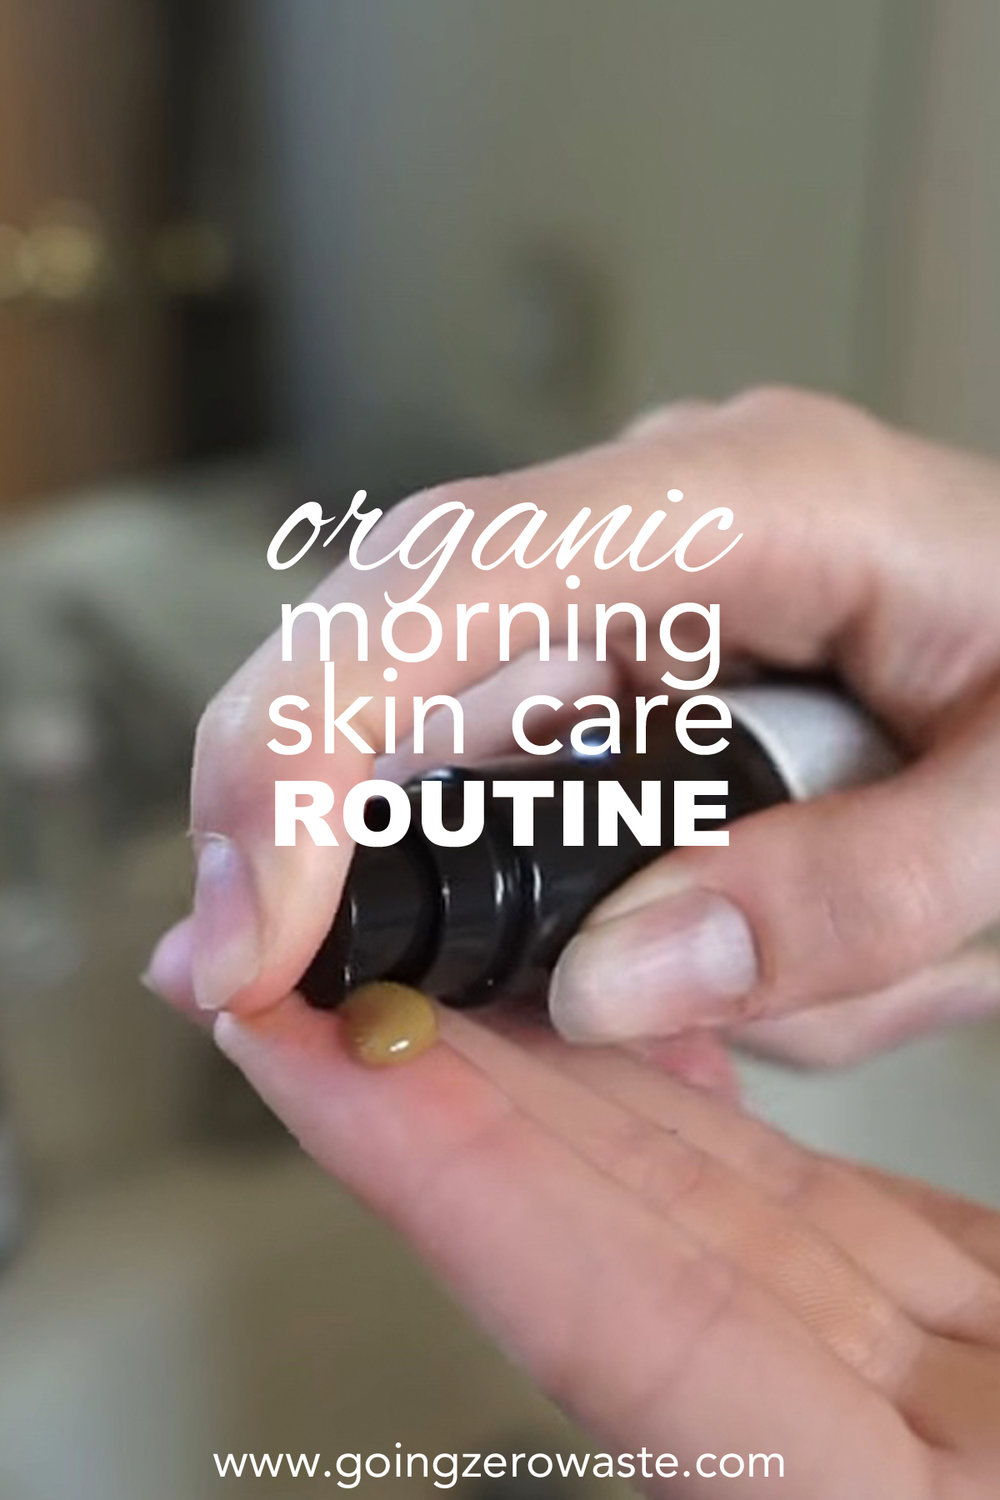 Organic, Morning Skin Care Routine from www.goingzerowaste.com